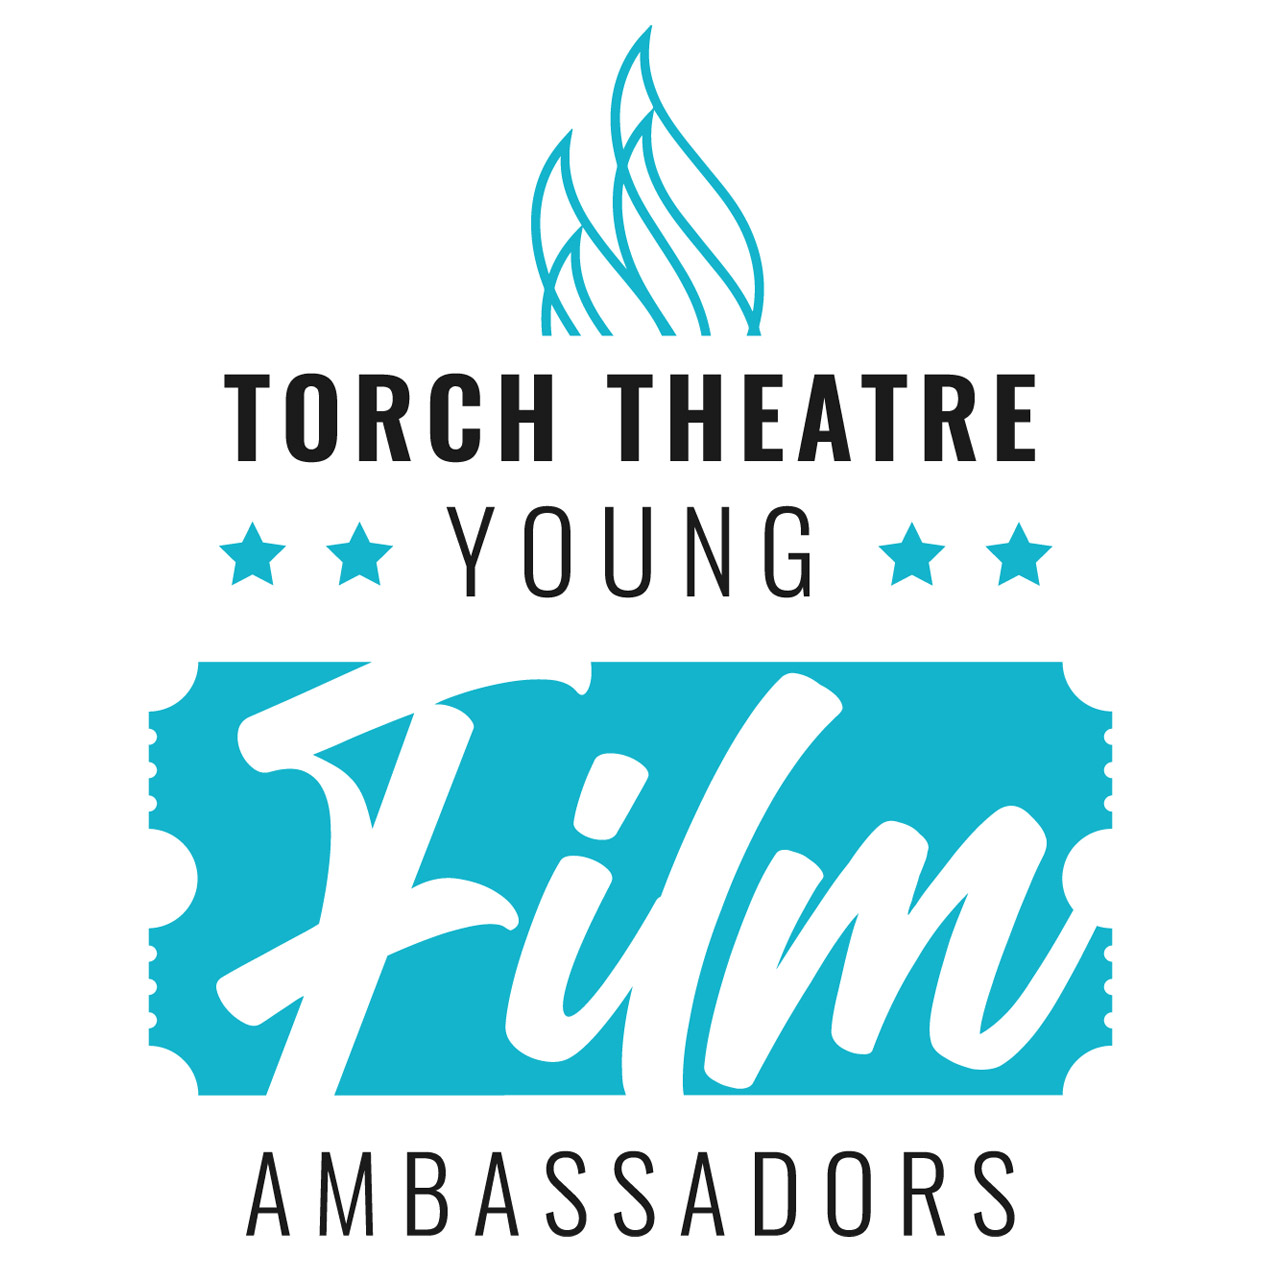 PUT YOURSELF IN THE PICTURE AS A YOUNG FILM AMBASSADOR WITH THE TORCH THEATRE!